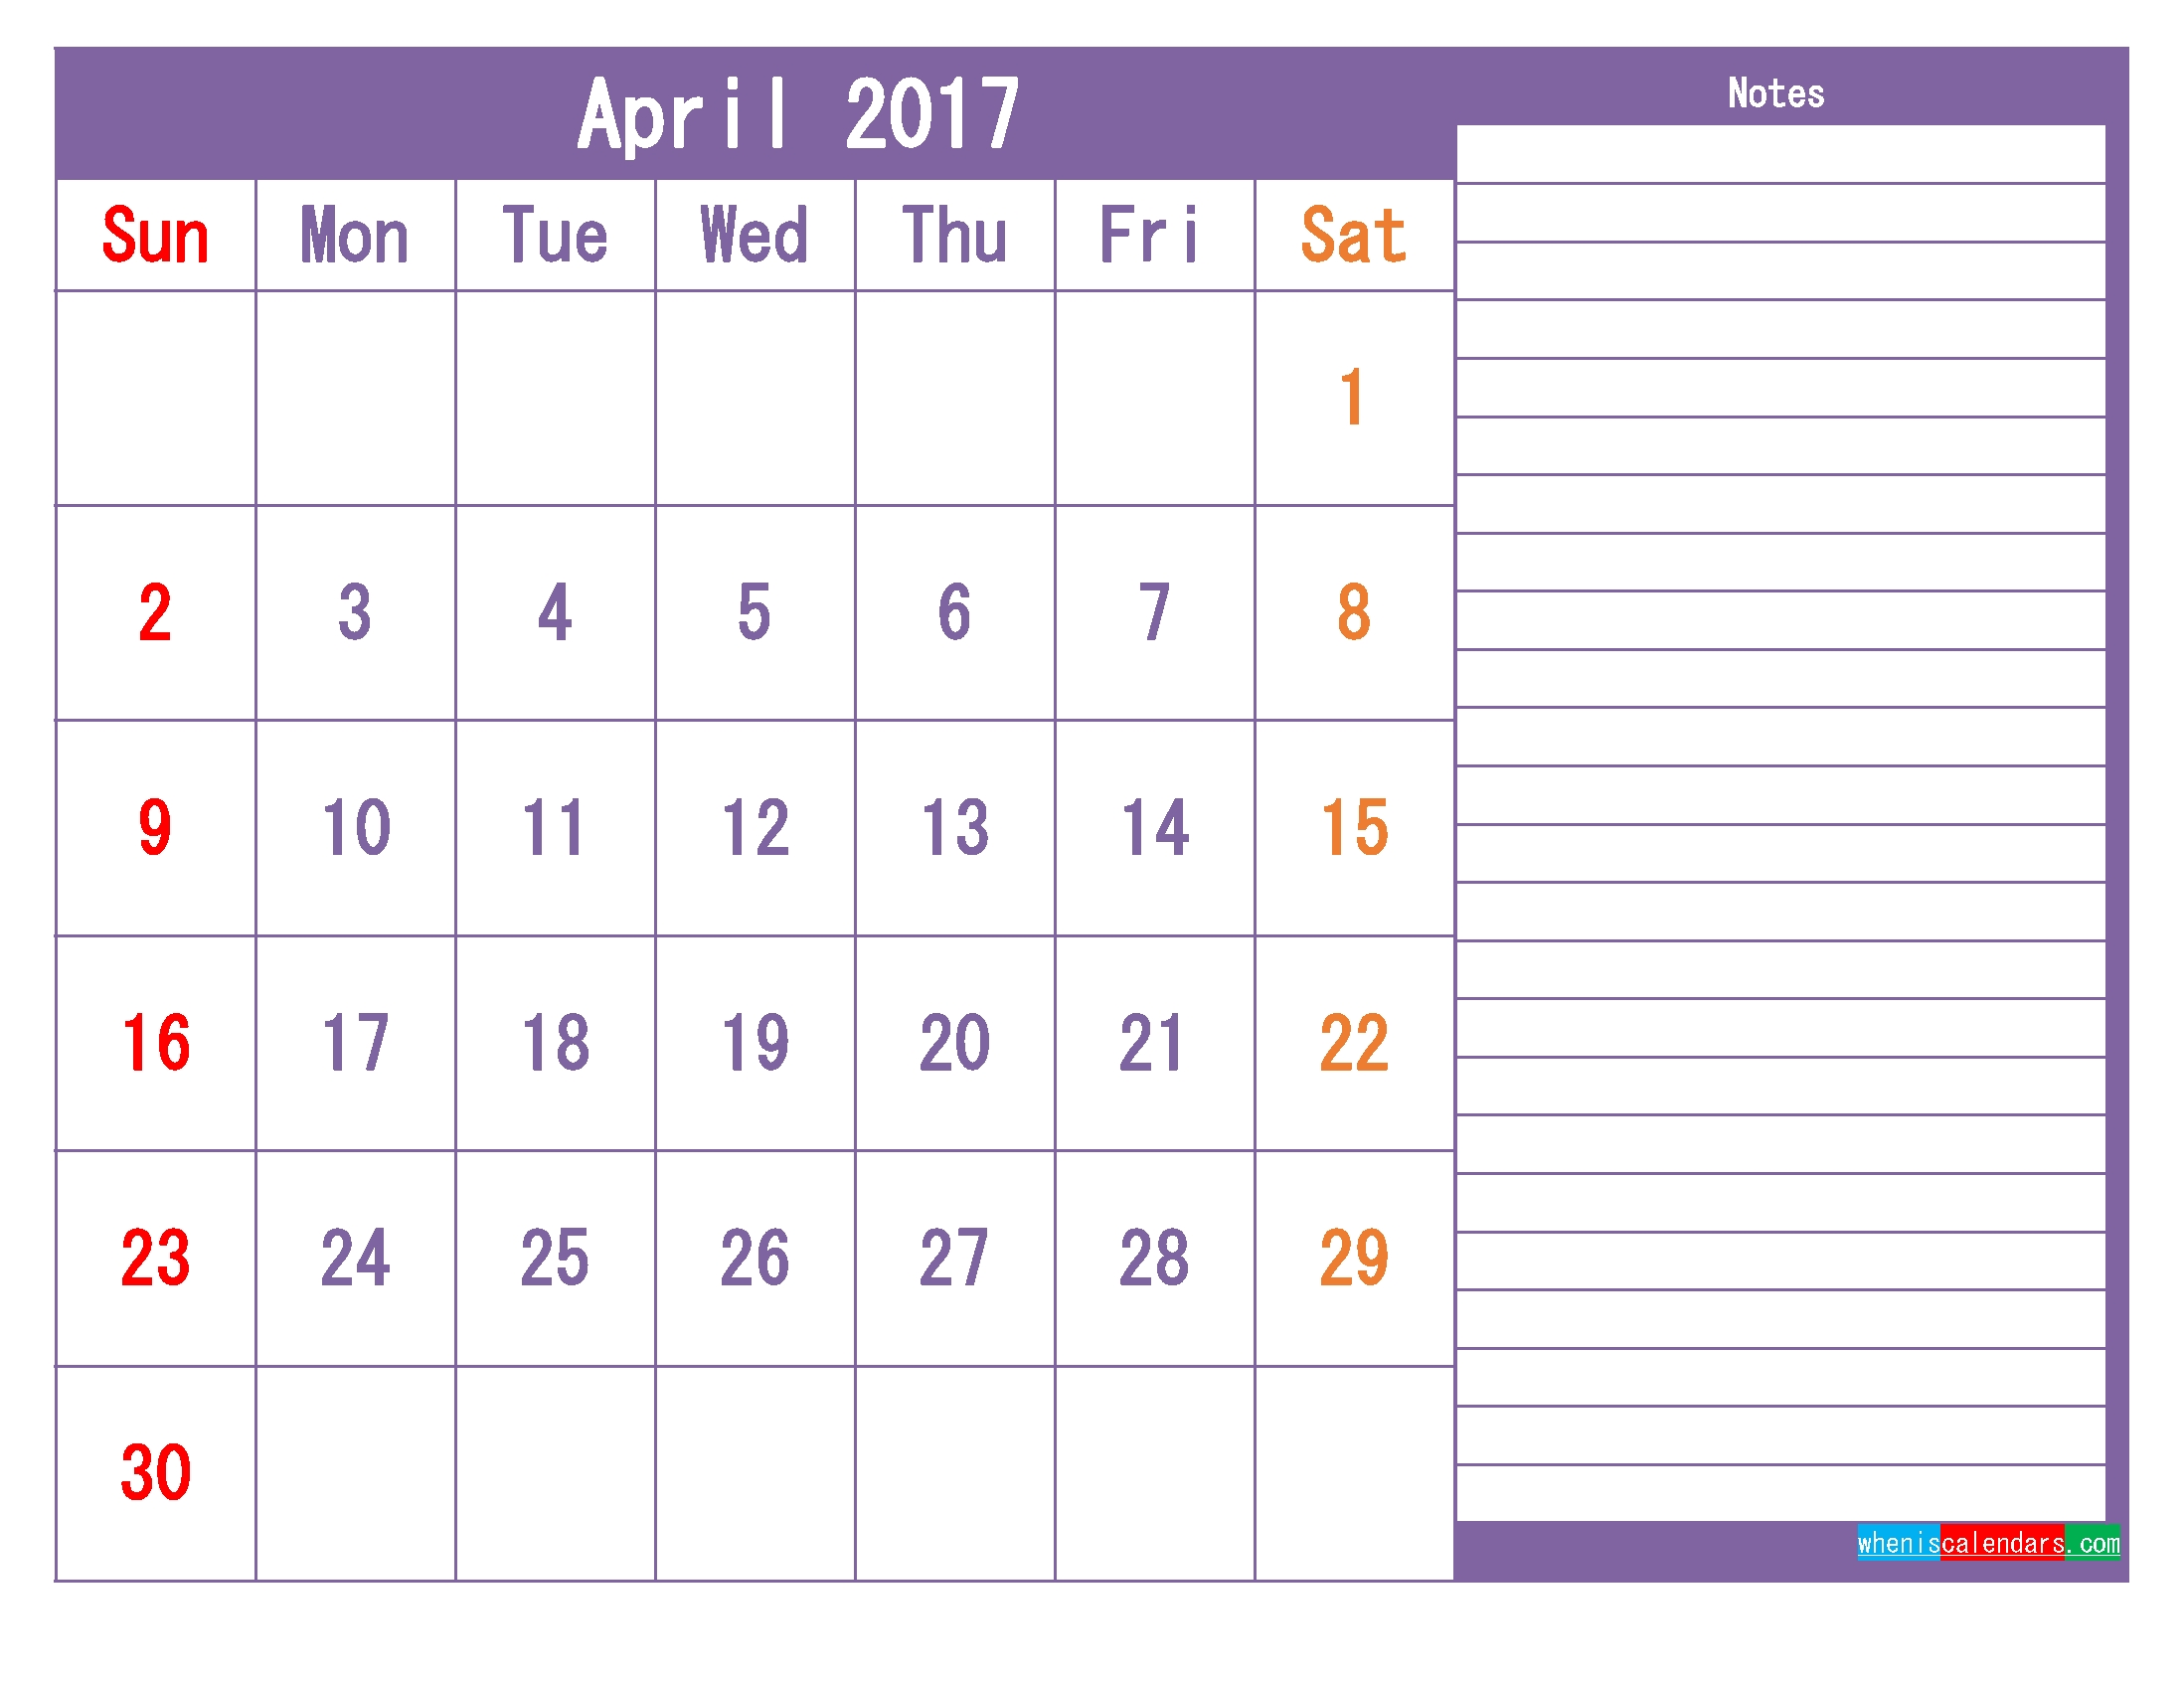 Printable 2017 Calendar Templates April ( Pdf, Png ) | Free Calendar Template With Room For Notes